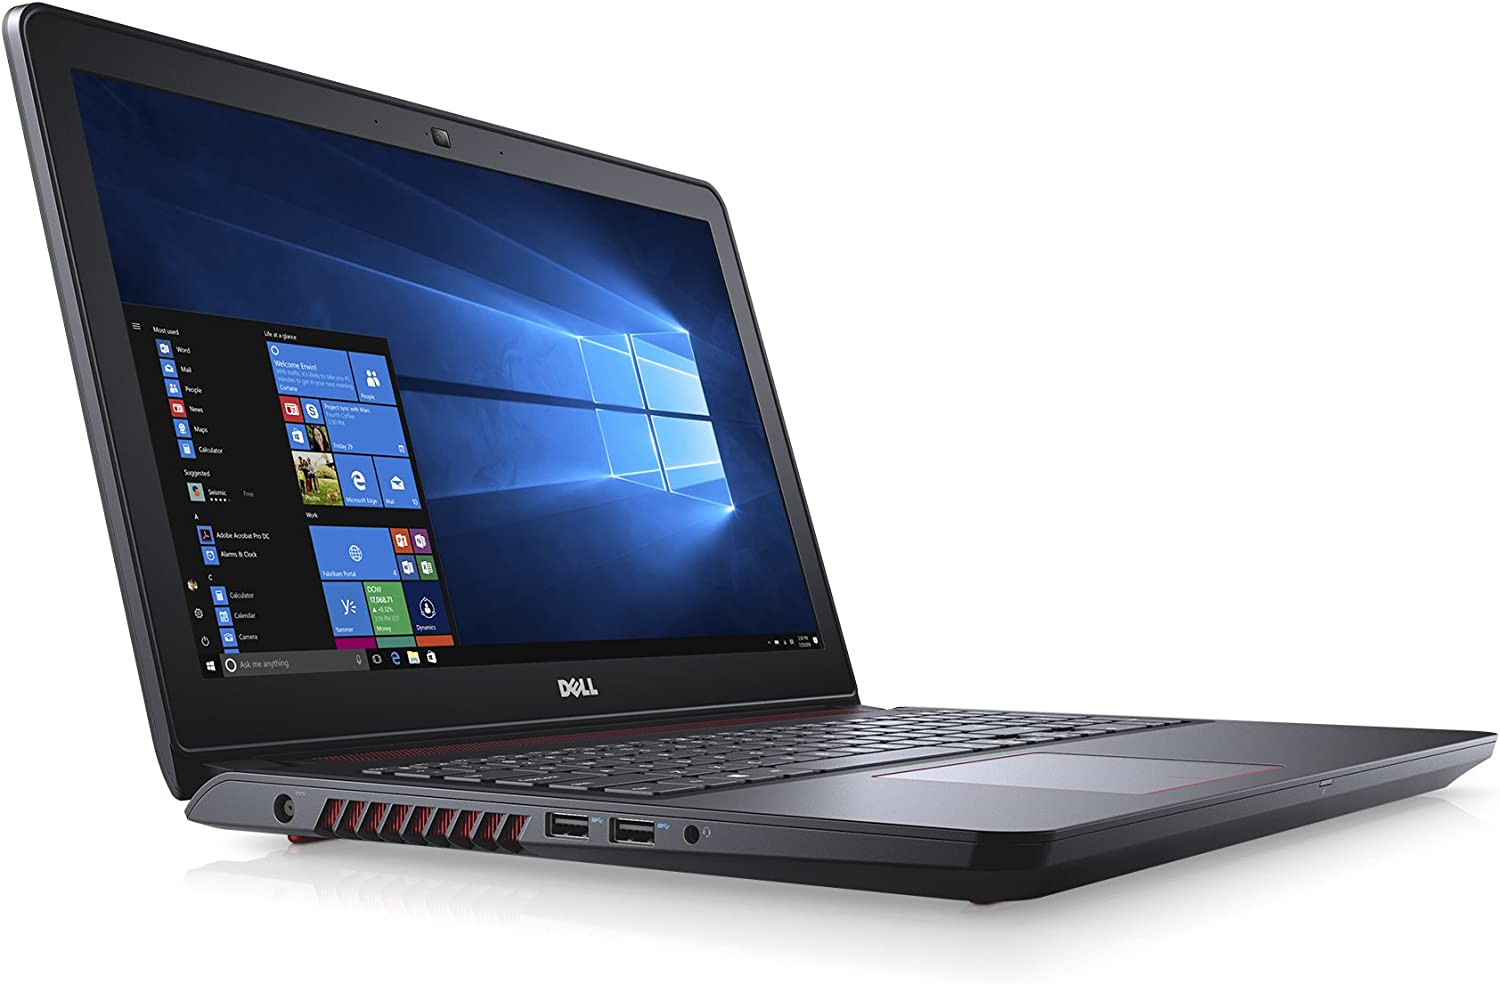 Dell Inspiron Top Performance Gaming Laptop, 5000 Series 15.6